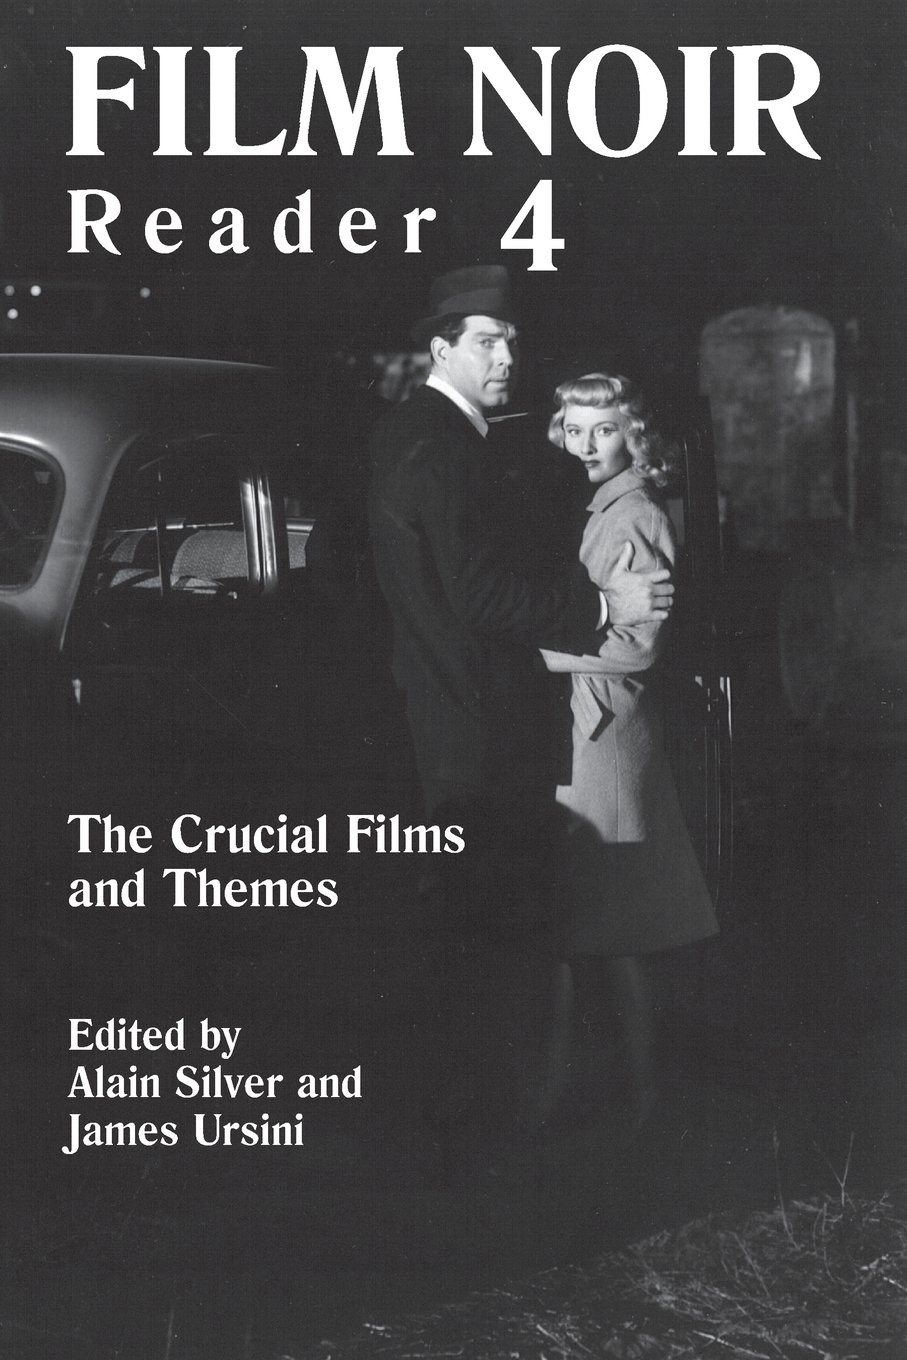 film noir reader 4 the crucial films and themes bk 4 alain film noir reader 4 the crucial films and themes bk 4 alain silver james ursini 0073999324679 com books